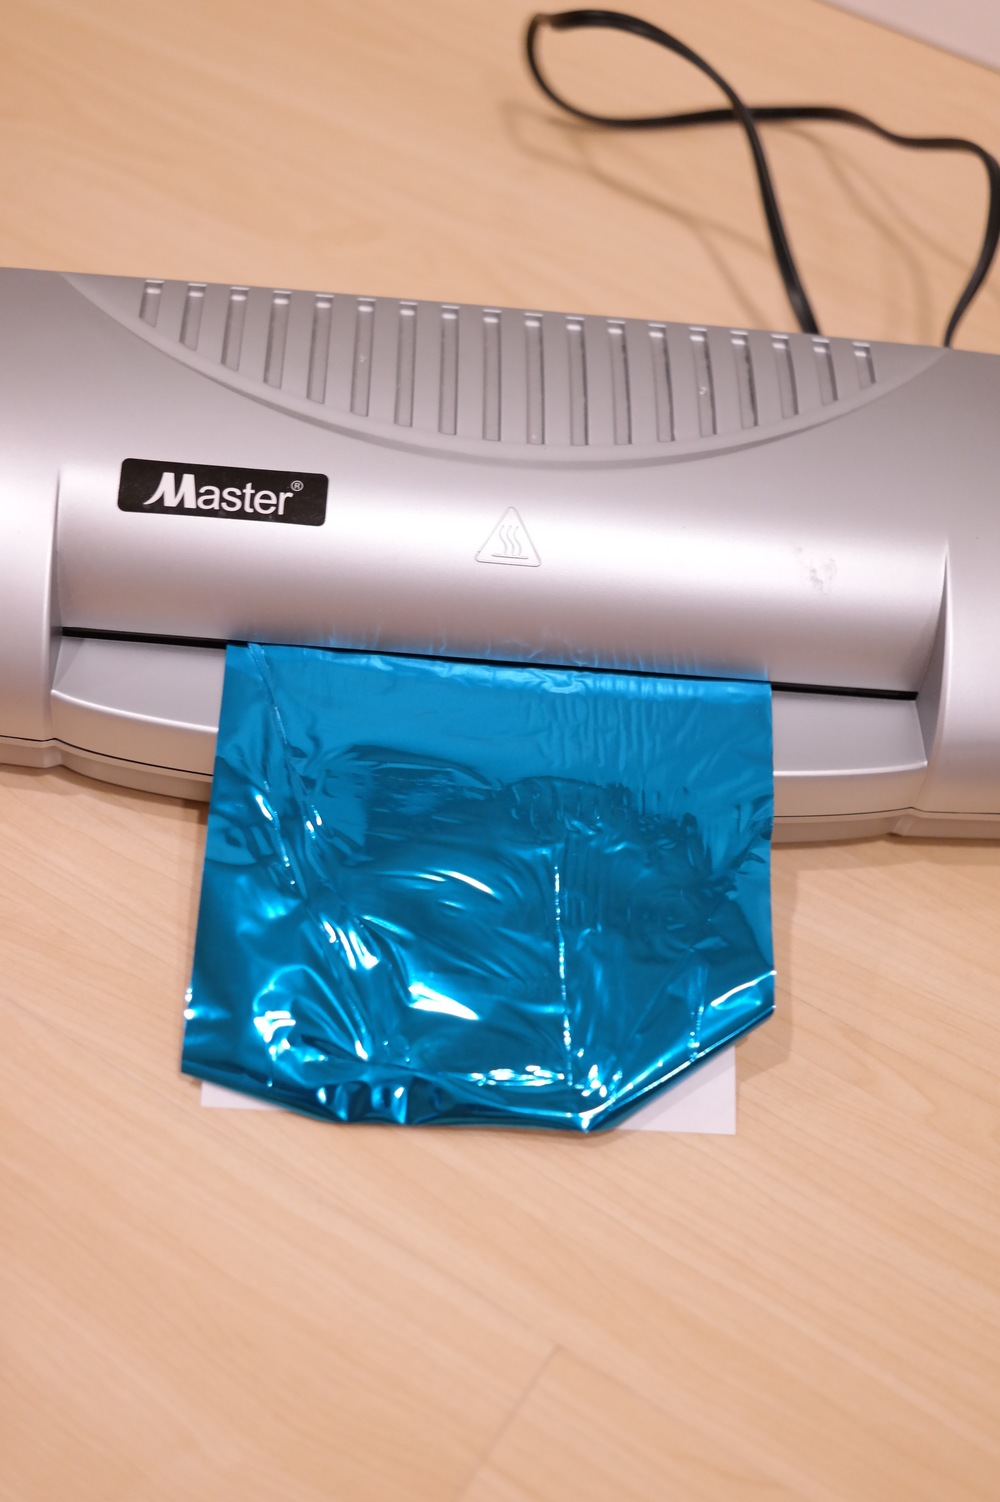 Align the foil on top of the print and run trough laminating machine at least 3-4 times before you peel off the foil